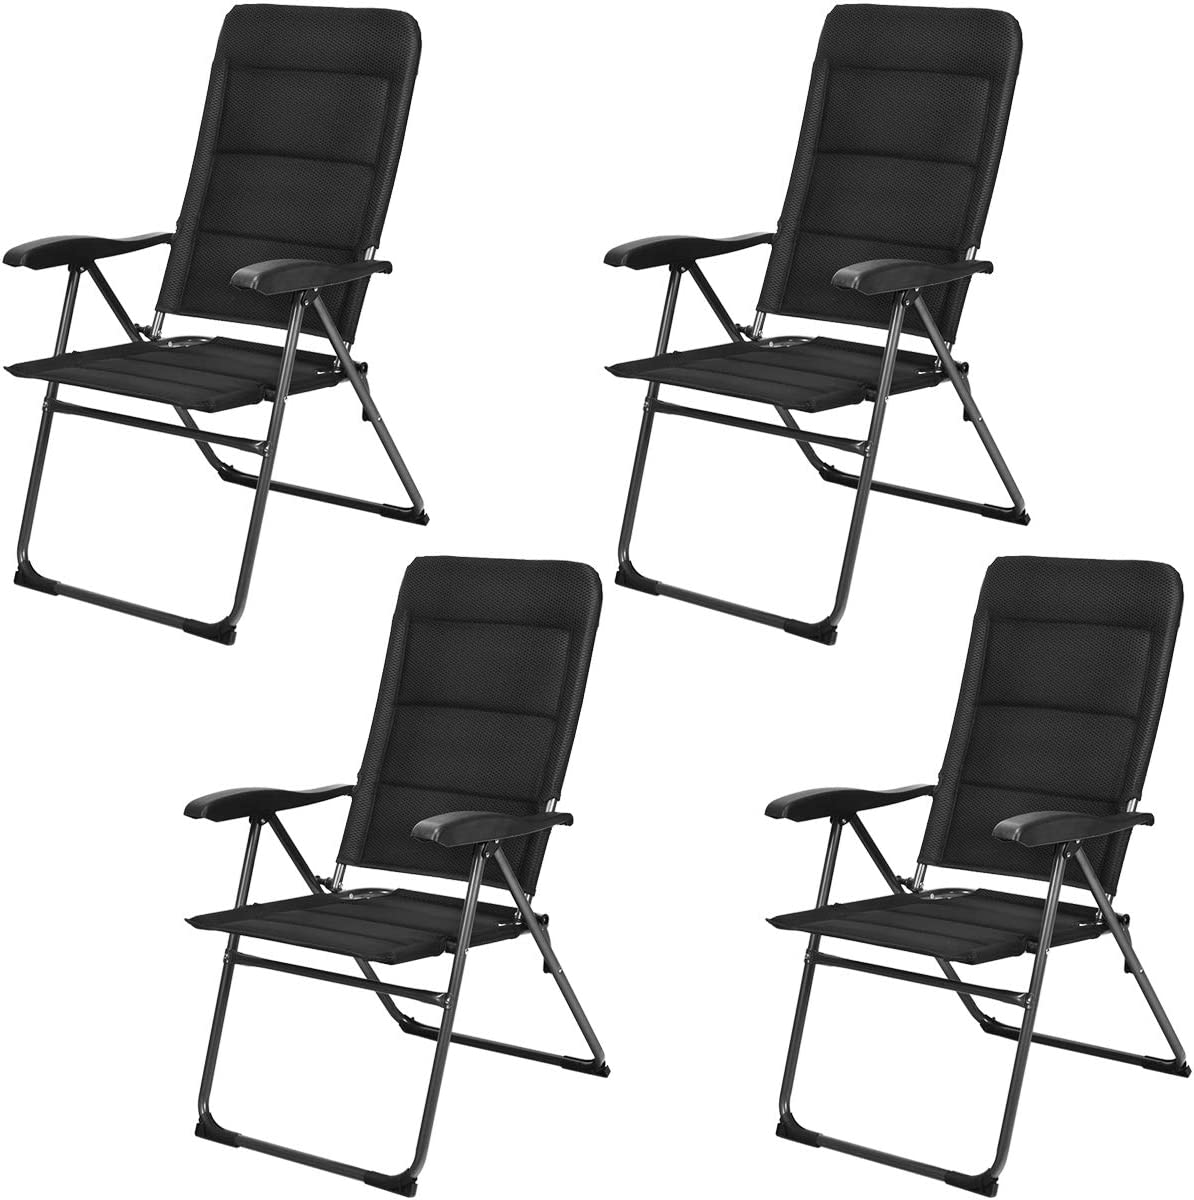 Giantex Set of 4 Patio Chairs, Folding Chairs with Adjustable Backrest, Outdoor Sling Chairs for Bistro, Deck, Backyard, Armchair with Padded Seat, 300 lbs Capacity 4, Black